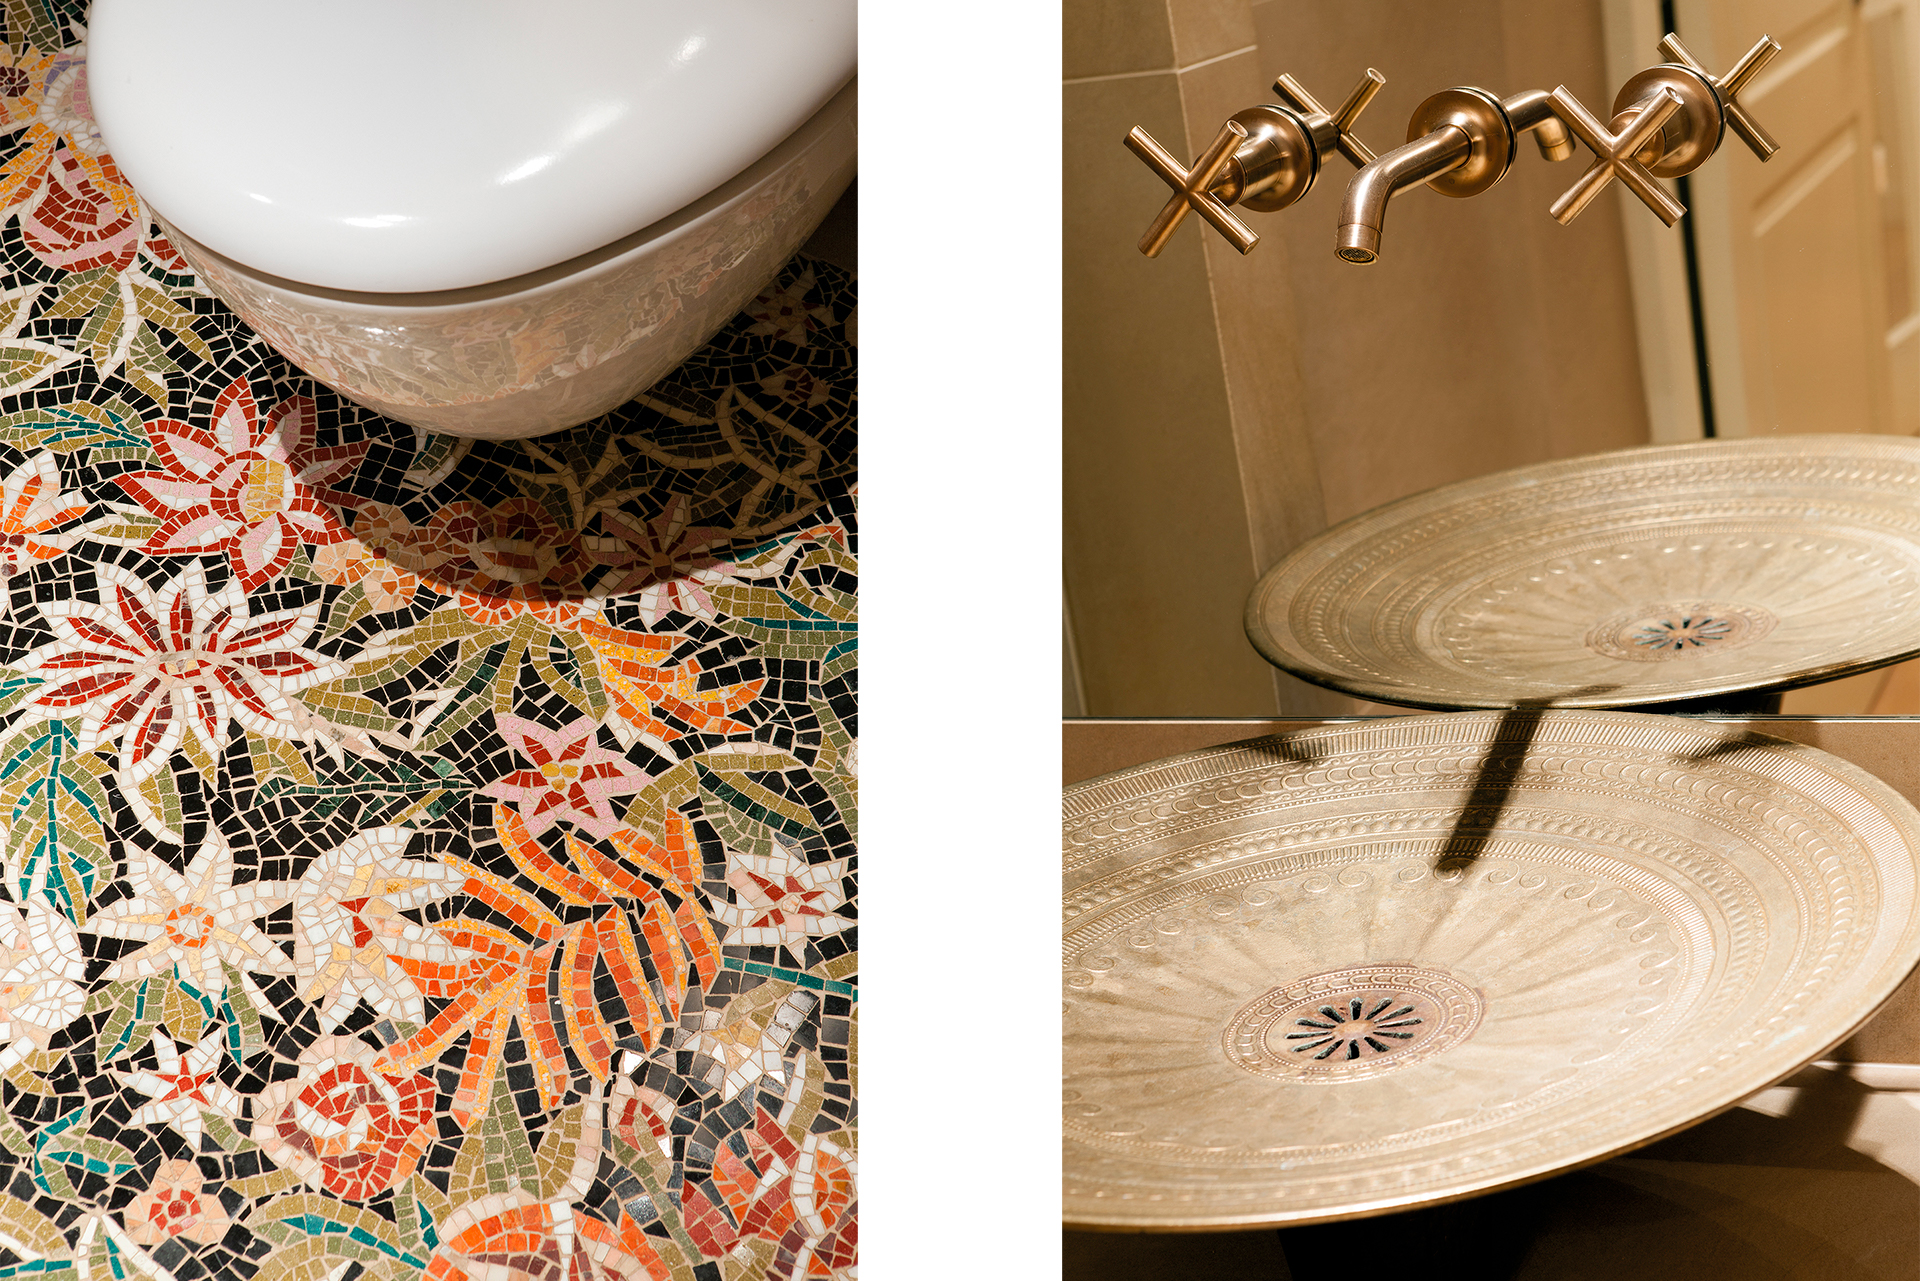 Floral mosiac covers the floor of this restroom and a faucet is built into the mirror above the sink giving it a floating appearance